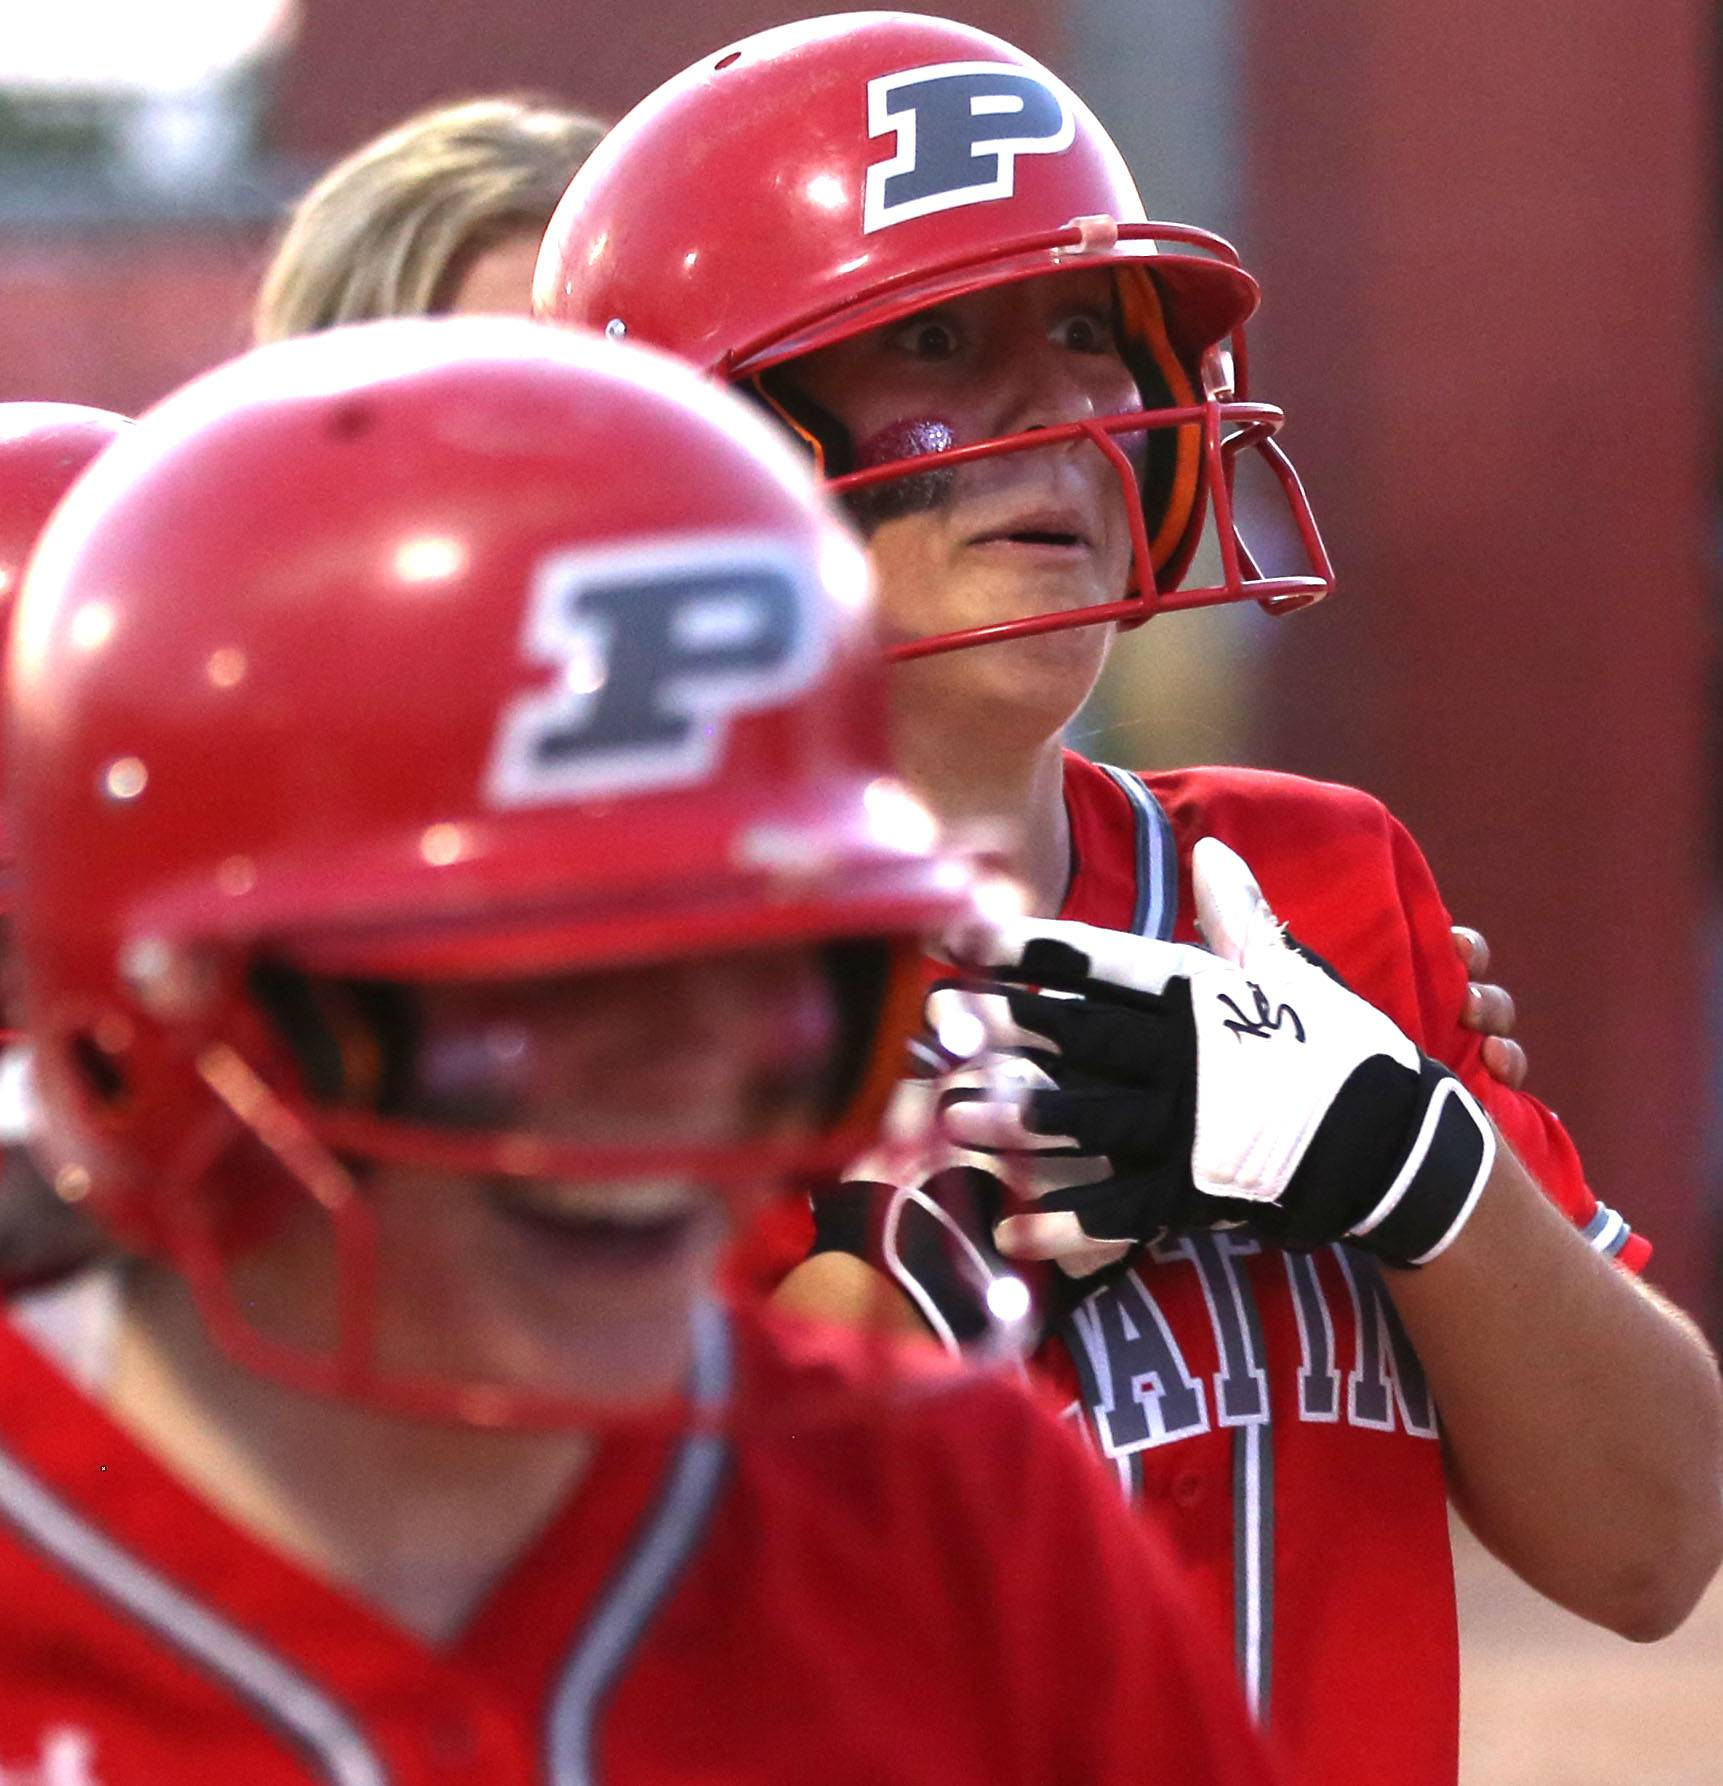 Palatine's Kaitlyn Reed reacts after her home run during Class 4A supersectional action at Barrington on Monday night.